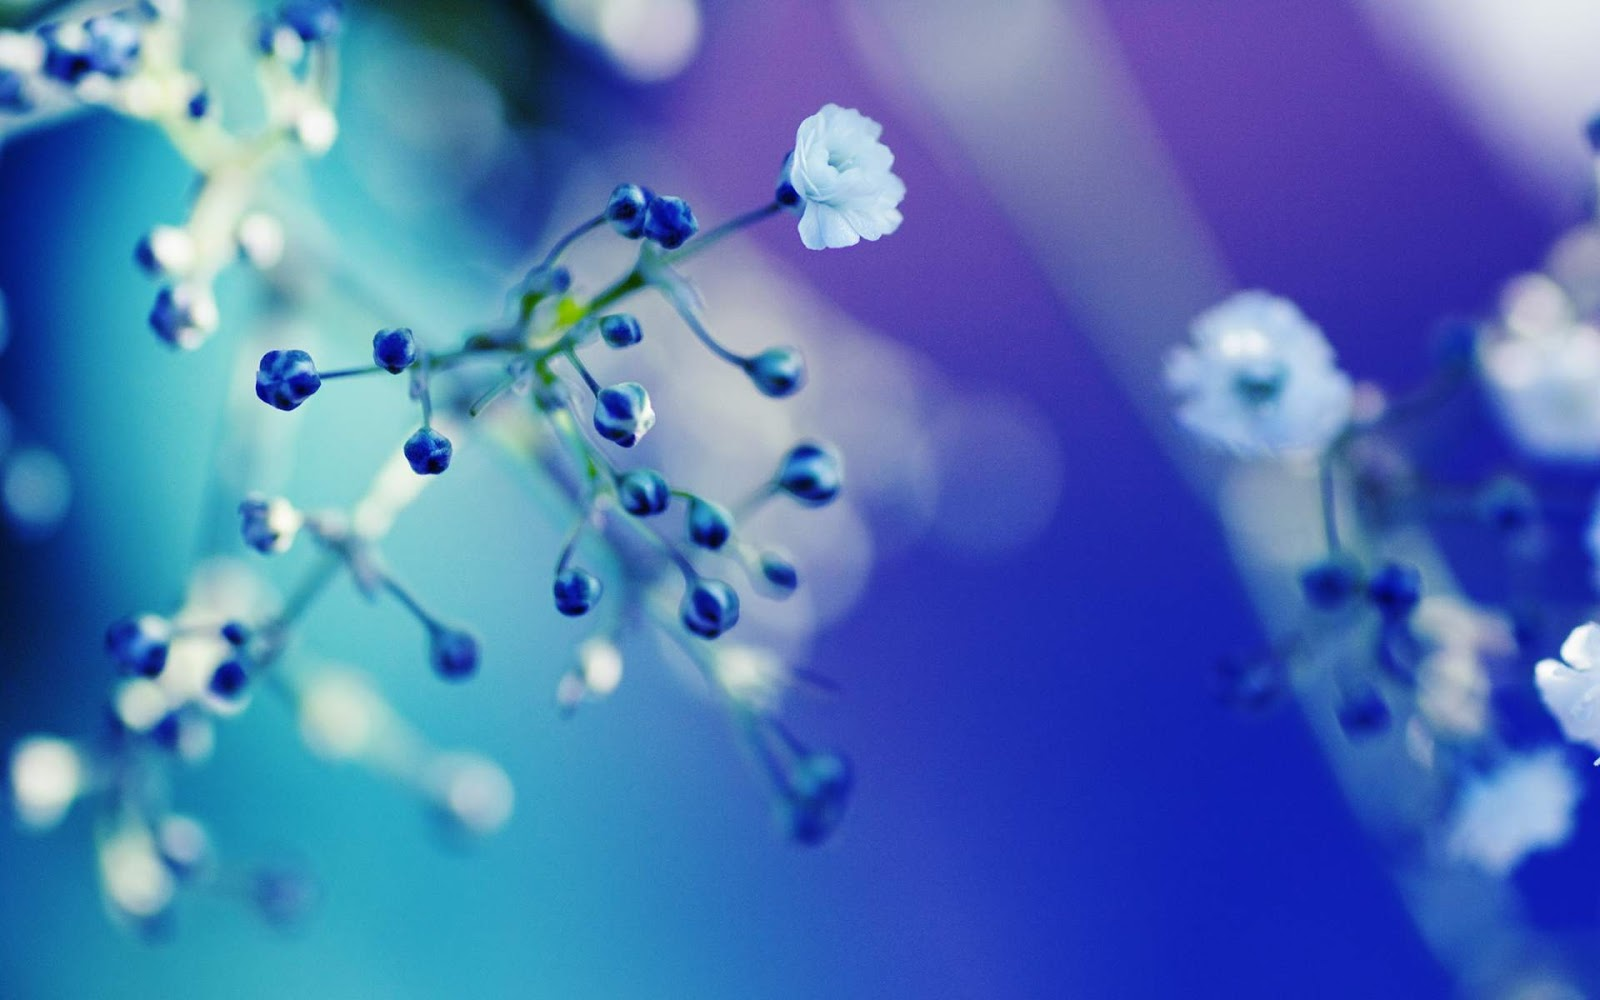 amazing flower: blue flower wallpaper